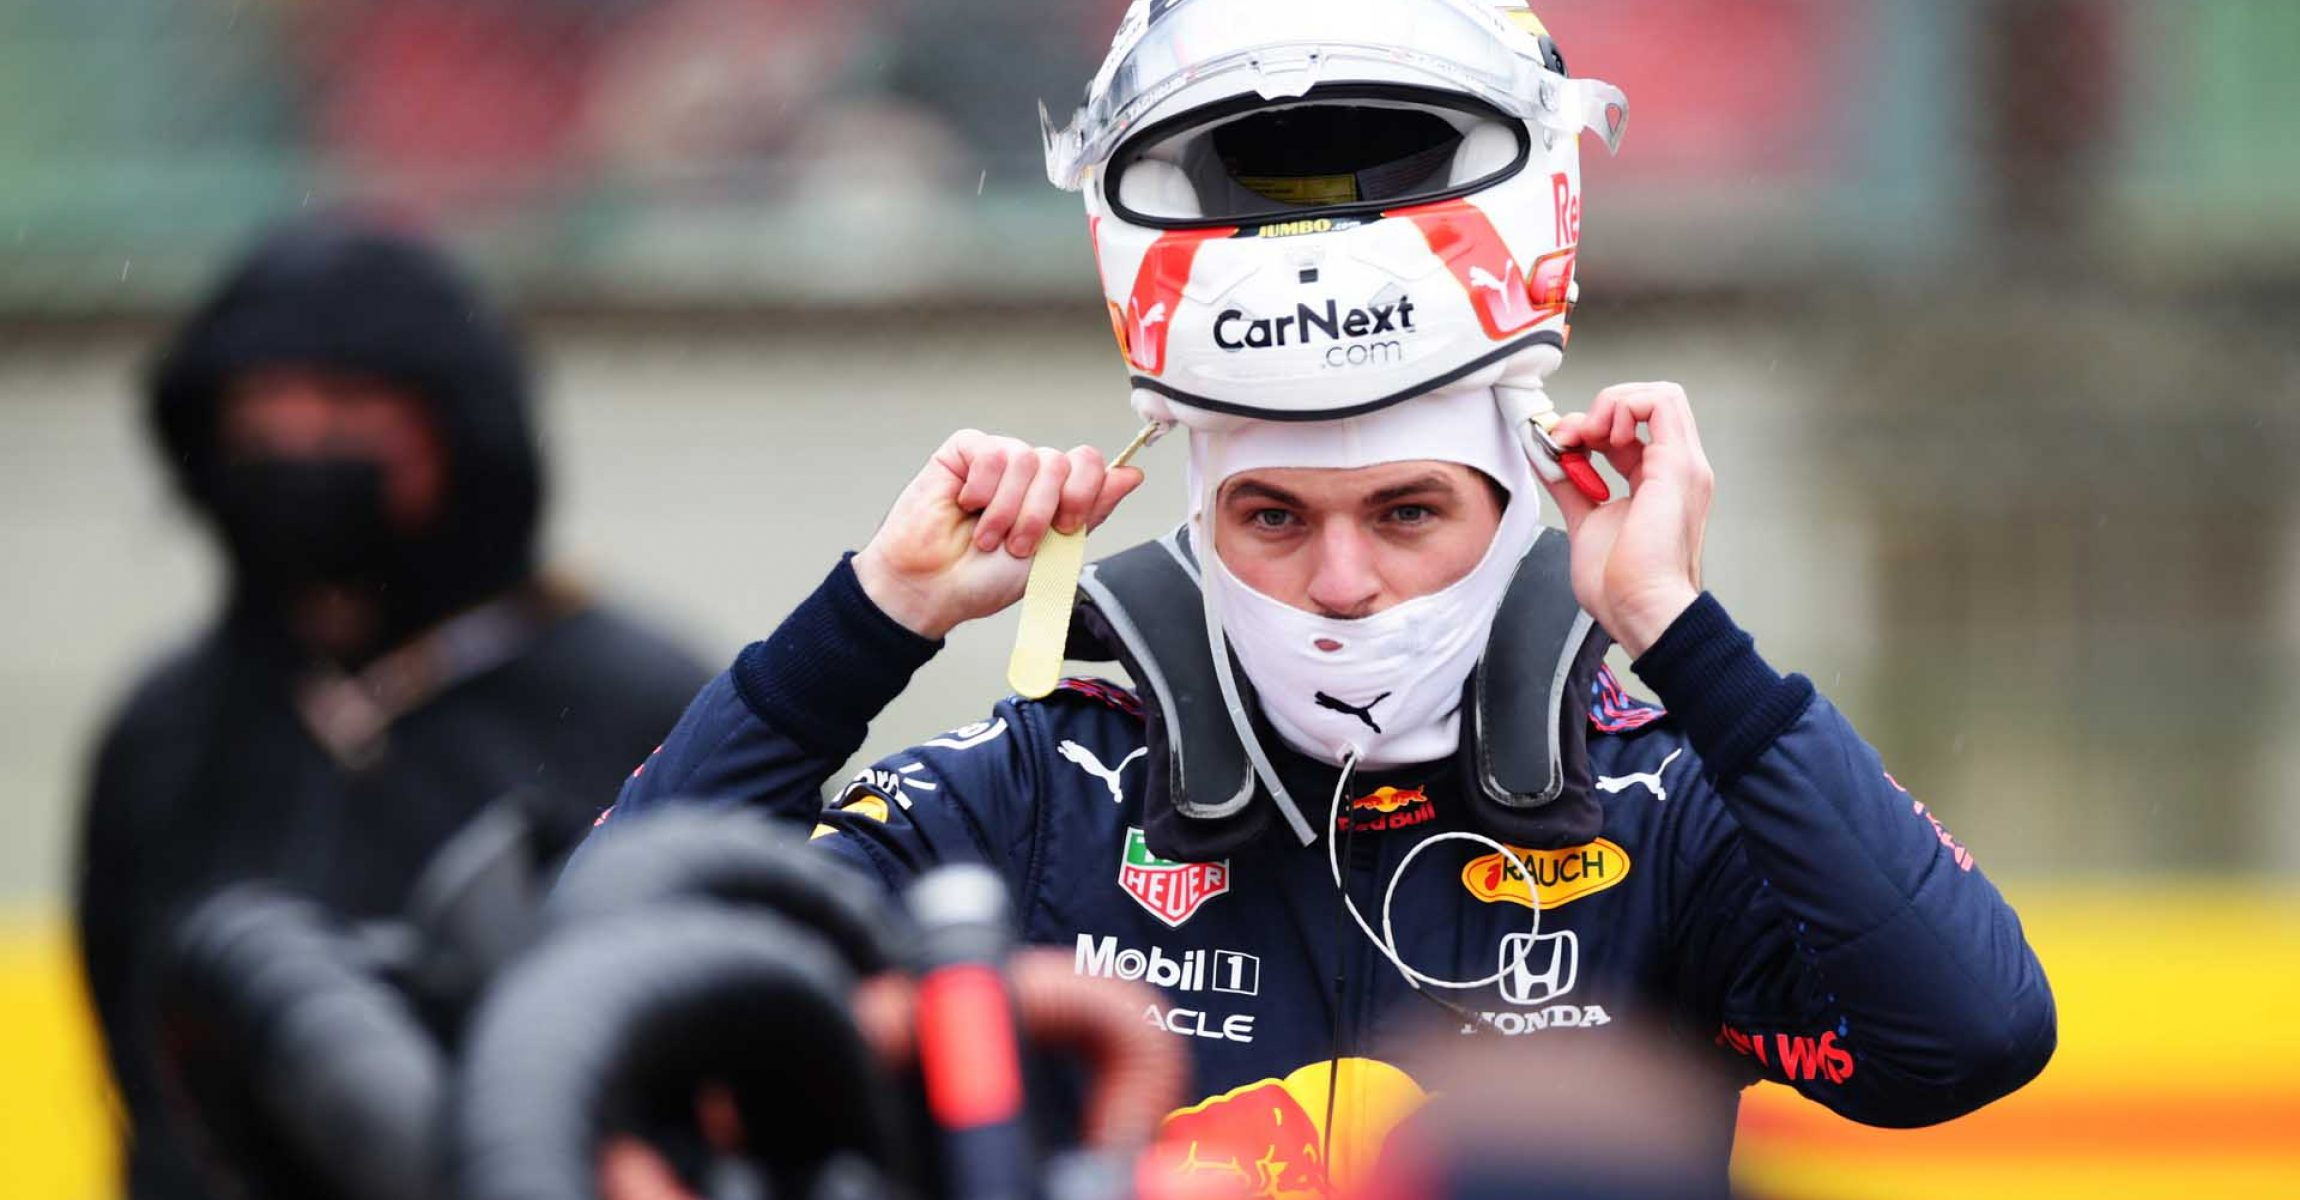 IMOLA, ITALY - APRIL 18: Max Verstappen of Netherlands and Red Bull Racing prepares to drive on the grid prior to the F1 Grand Prix of Emilia Romagna at Autodromo Enzo e Dino Ferrari on April 18, 2021 in Imola, Italy. (Photo by Peter Fox/Getty Images)